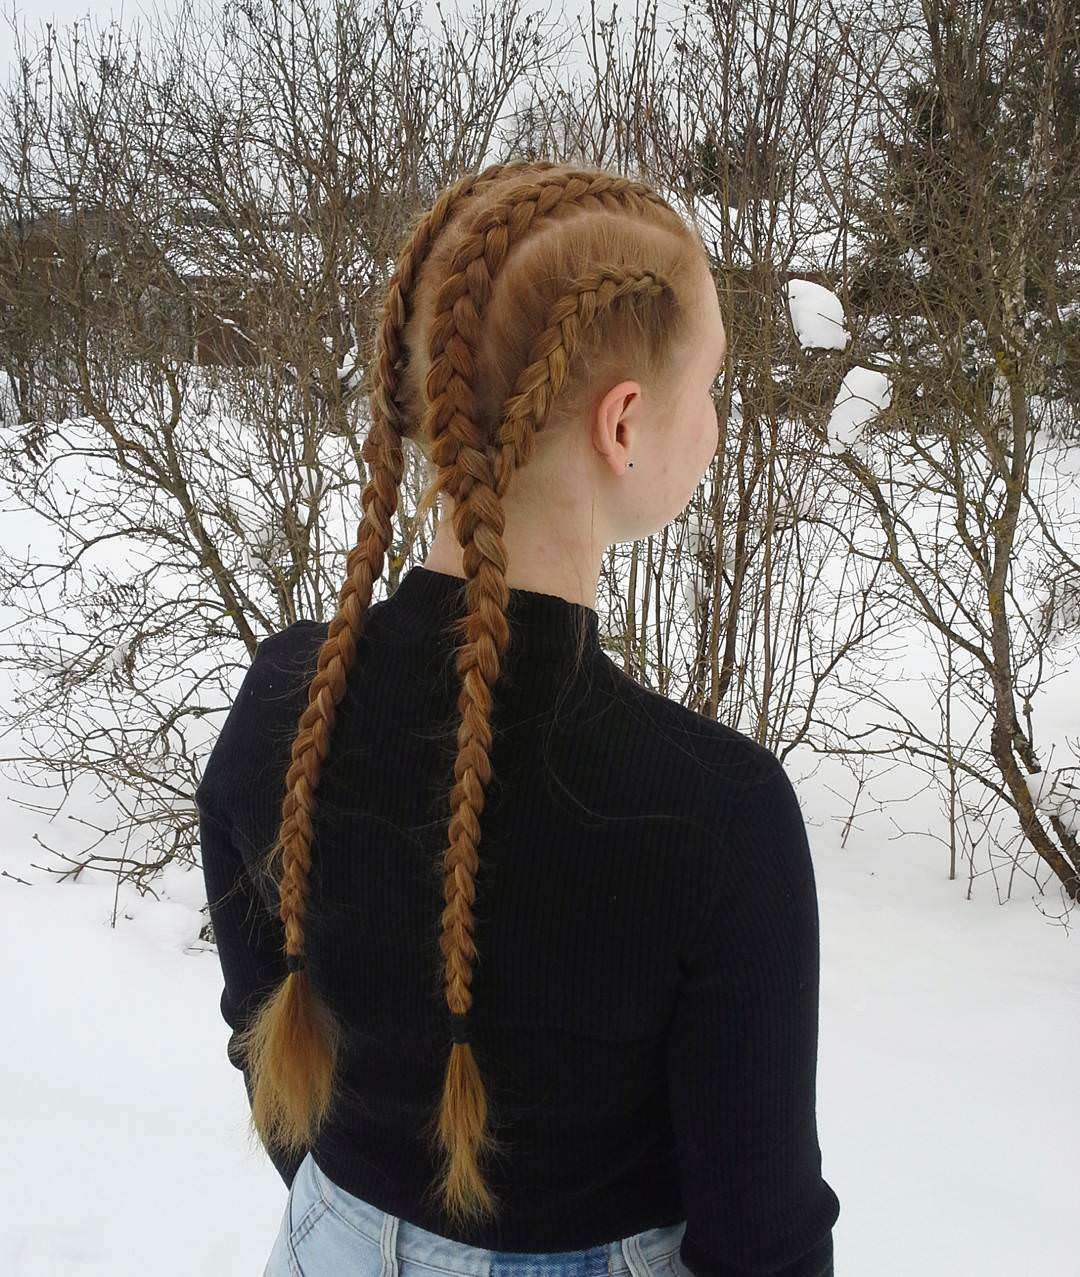 cool two braided hairstyle